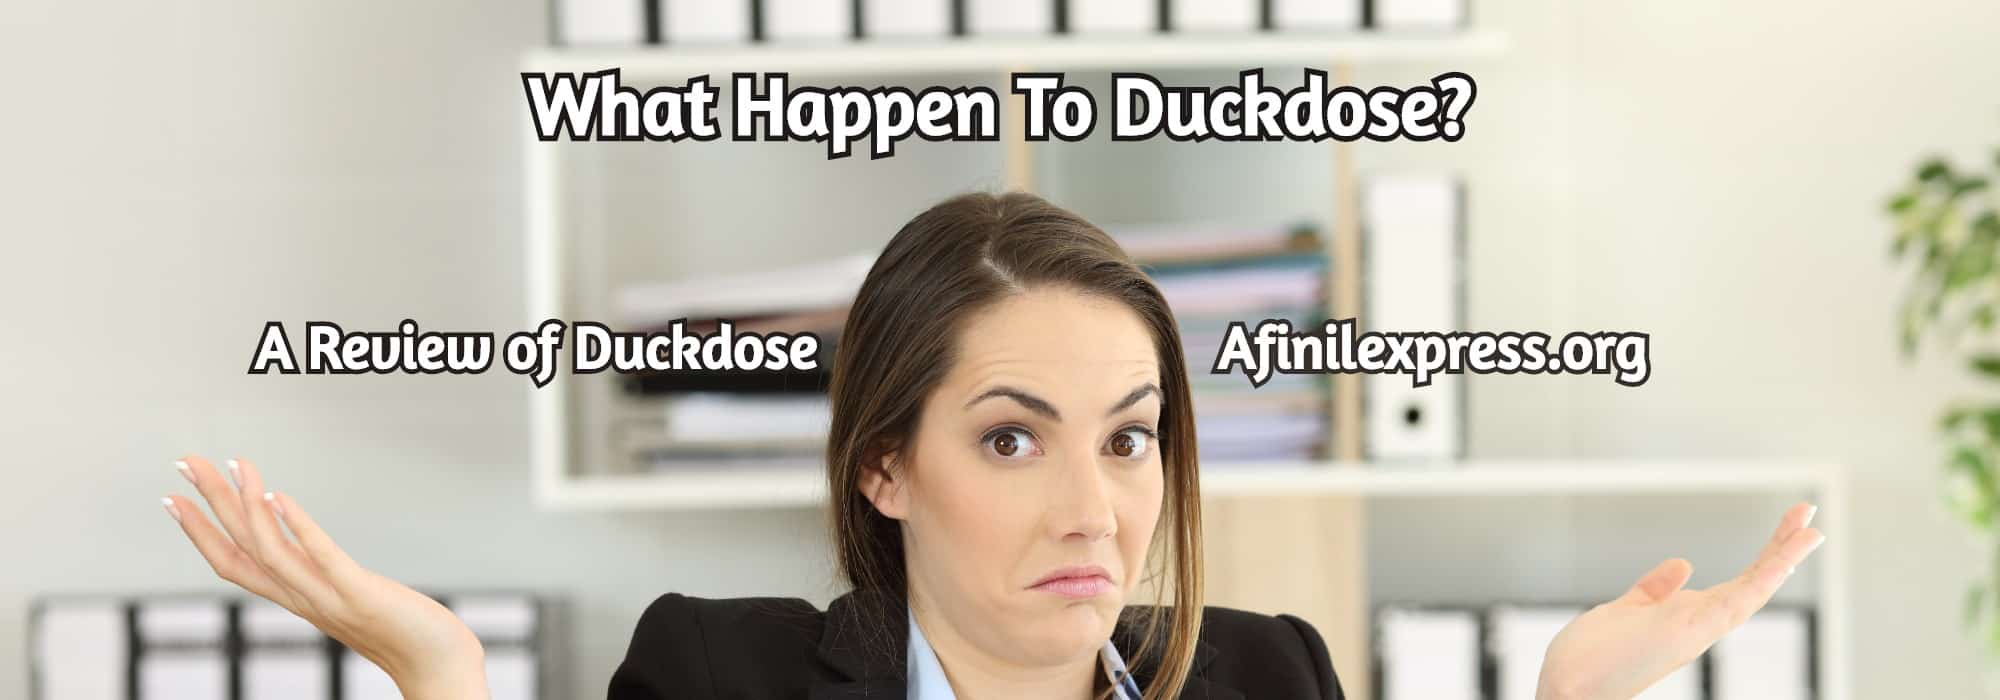 A Review of Duckdose, Afinilexpress.org